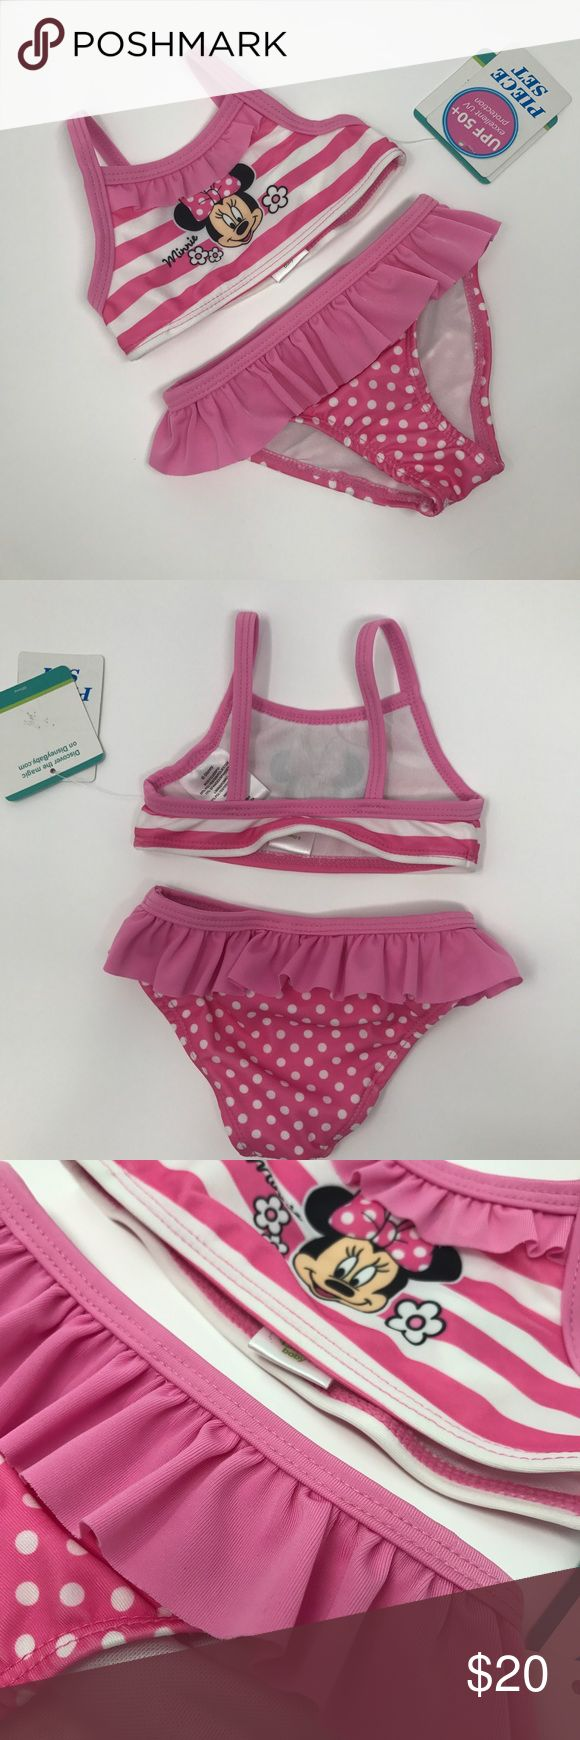 Disney baby two piece bathing suit Disney 2 piece baby bathing suit. Pink mini mouse baby bikini. Size 3/6 Months. Excellent UPF protection-50+. Adorable for a first time bathing suit! Disney Swim Bikinis